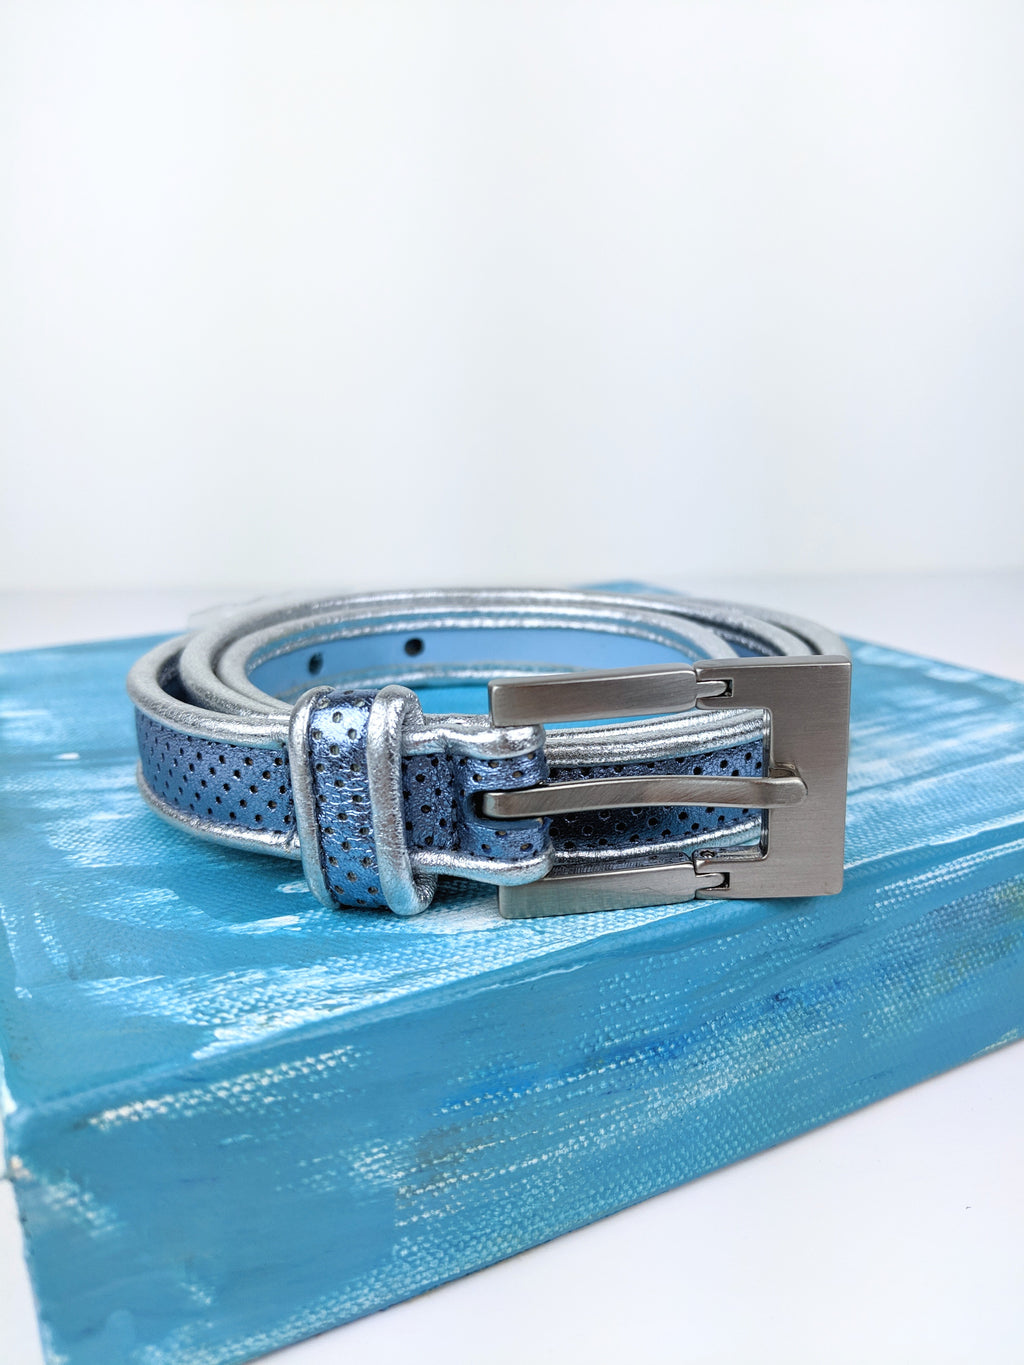 Metallic Leather Belt (27-30)